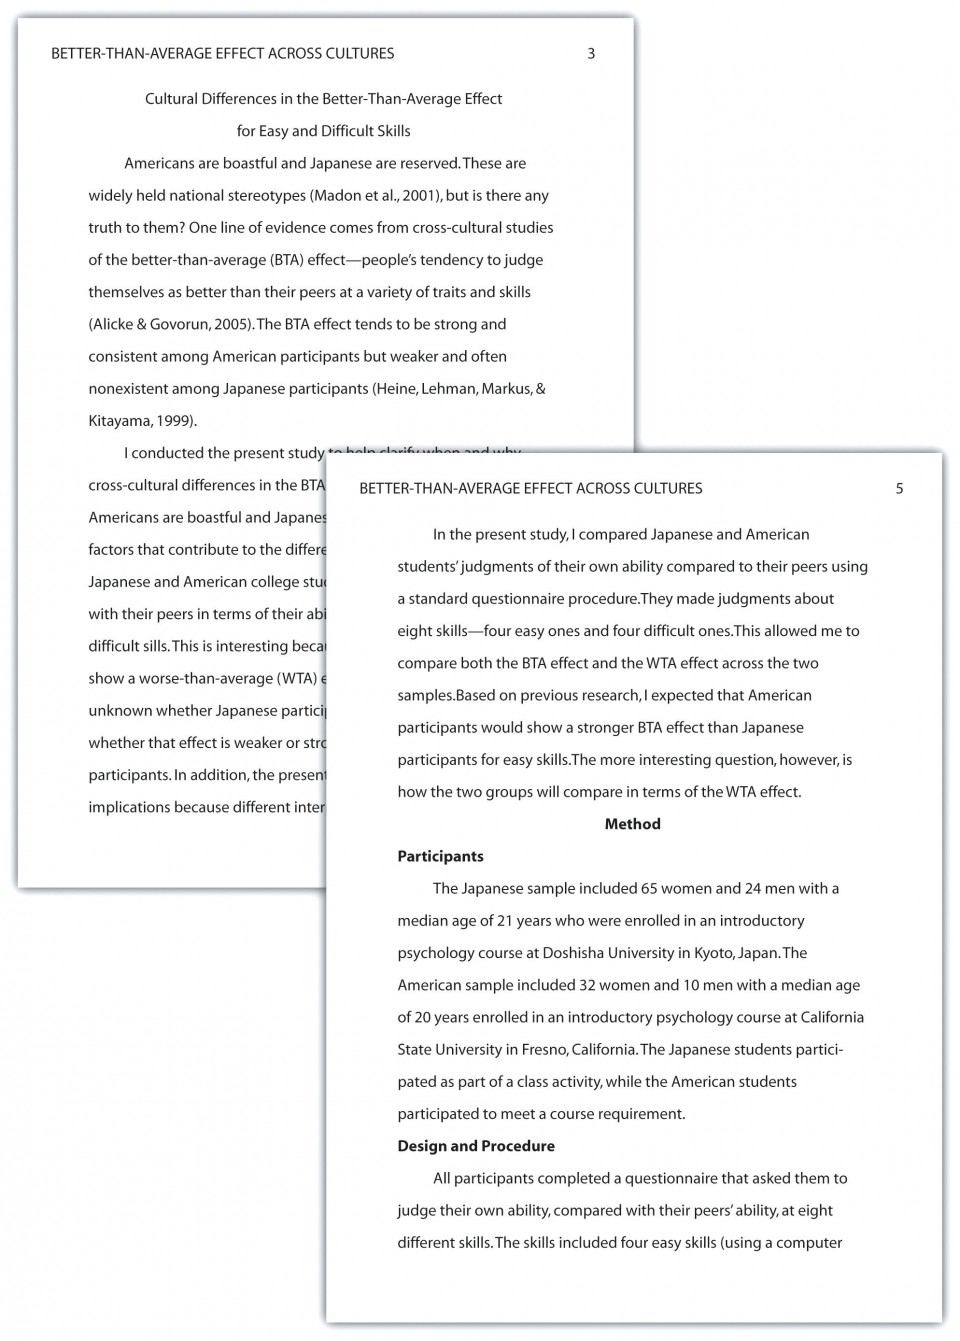 016 Essay Example Asa Paper Format Template Narrative Sample Papers Cause And Effect Also Price Research In Chinese Remarkable Reference Generator Heading Citation 960